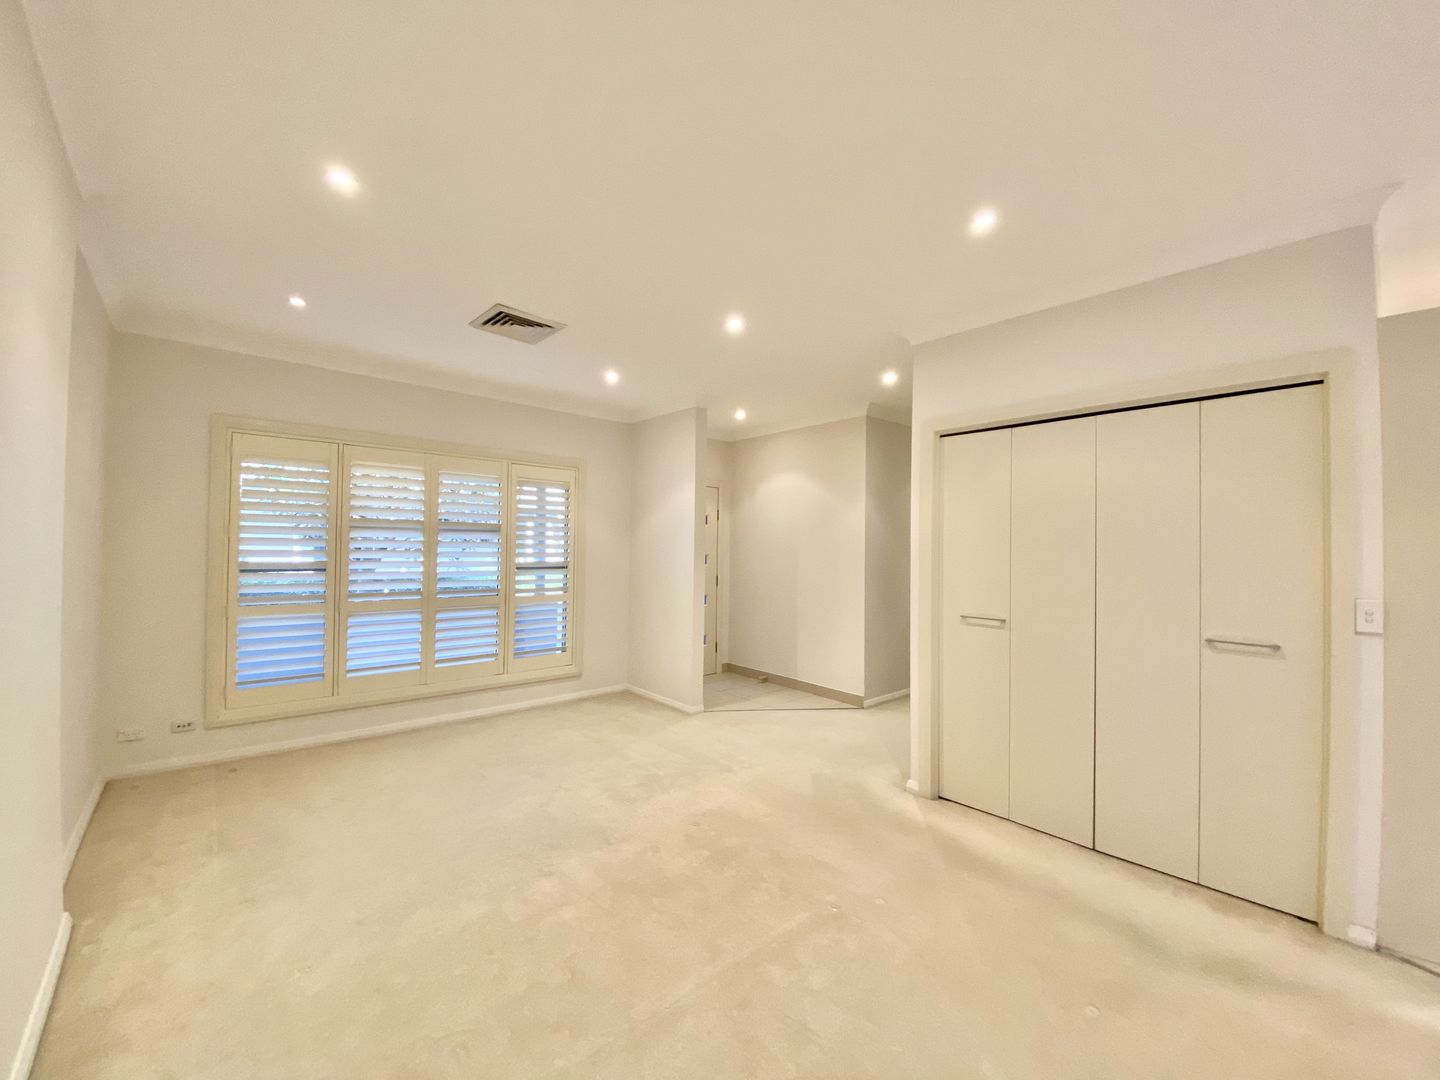 2/59-61 Dolans Road, Woolooware NSW 2230, Image 1